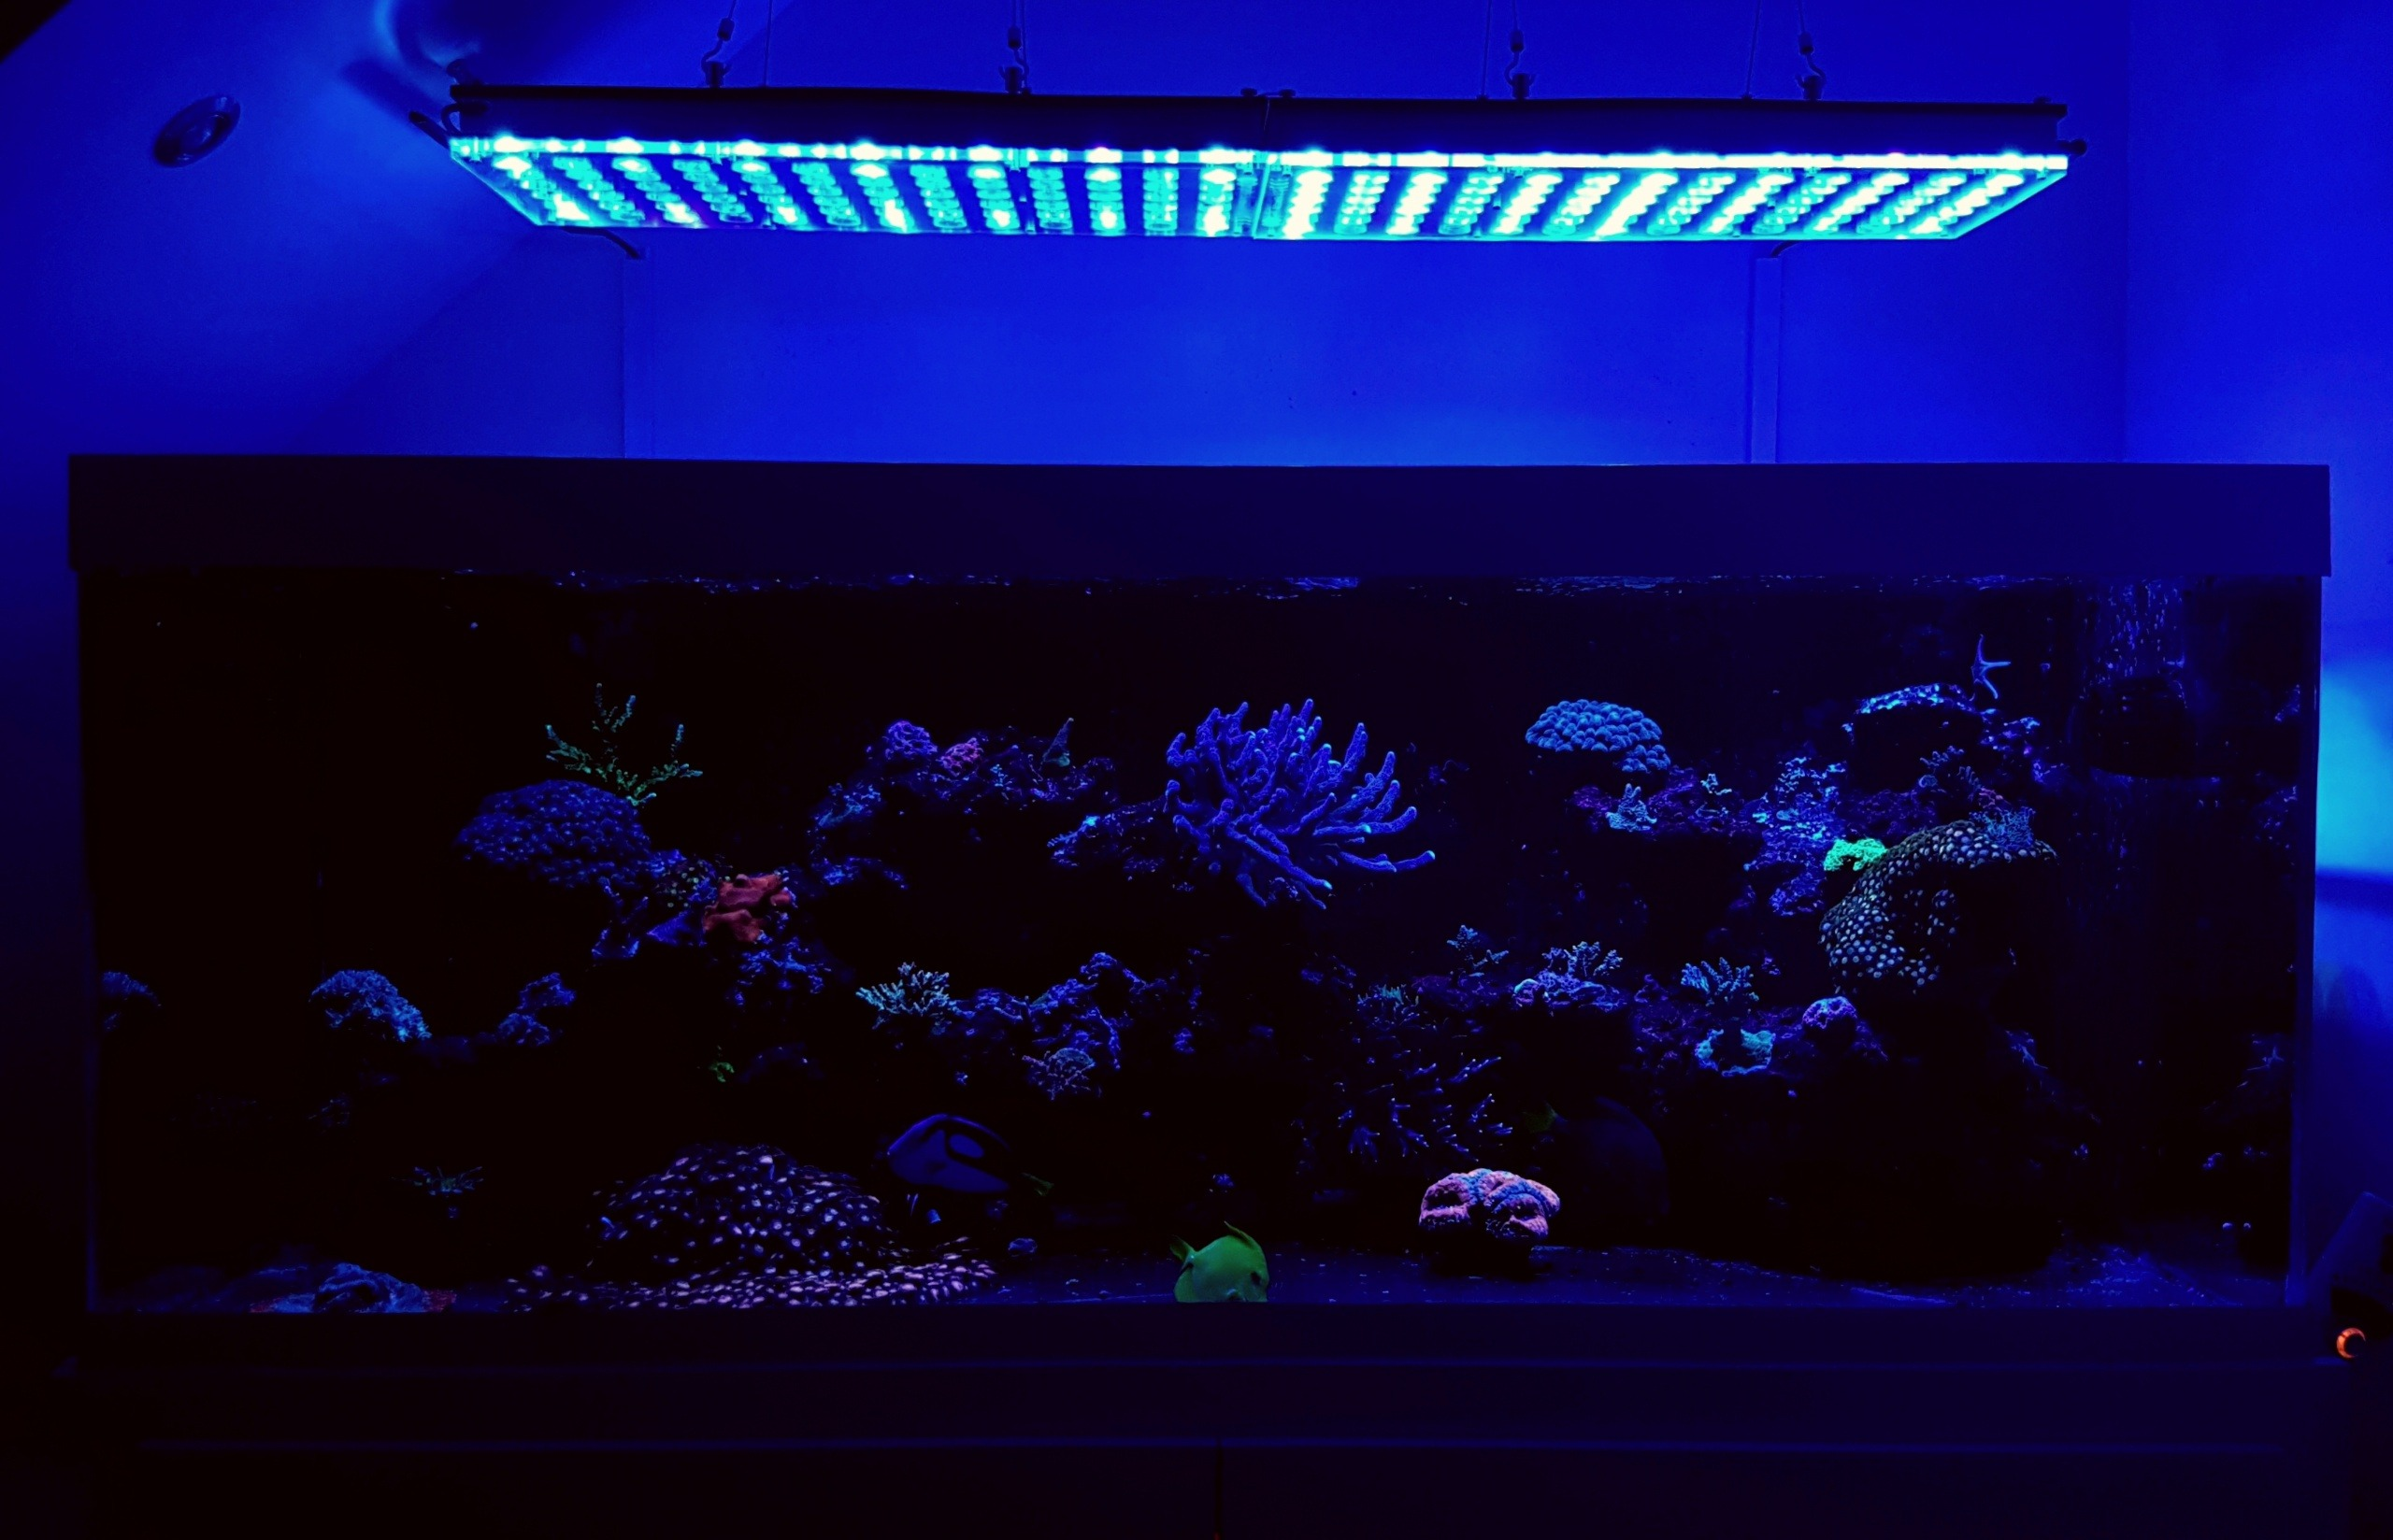 uk kundenbesprechung atlantik v4 reef aquarium led beleuchtung aquarium led beleuchtung orphek. Black Bedroom Furniture Sets. Home Design Ideas